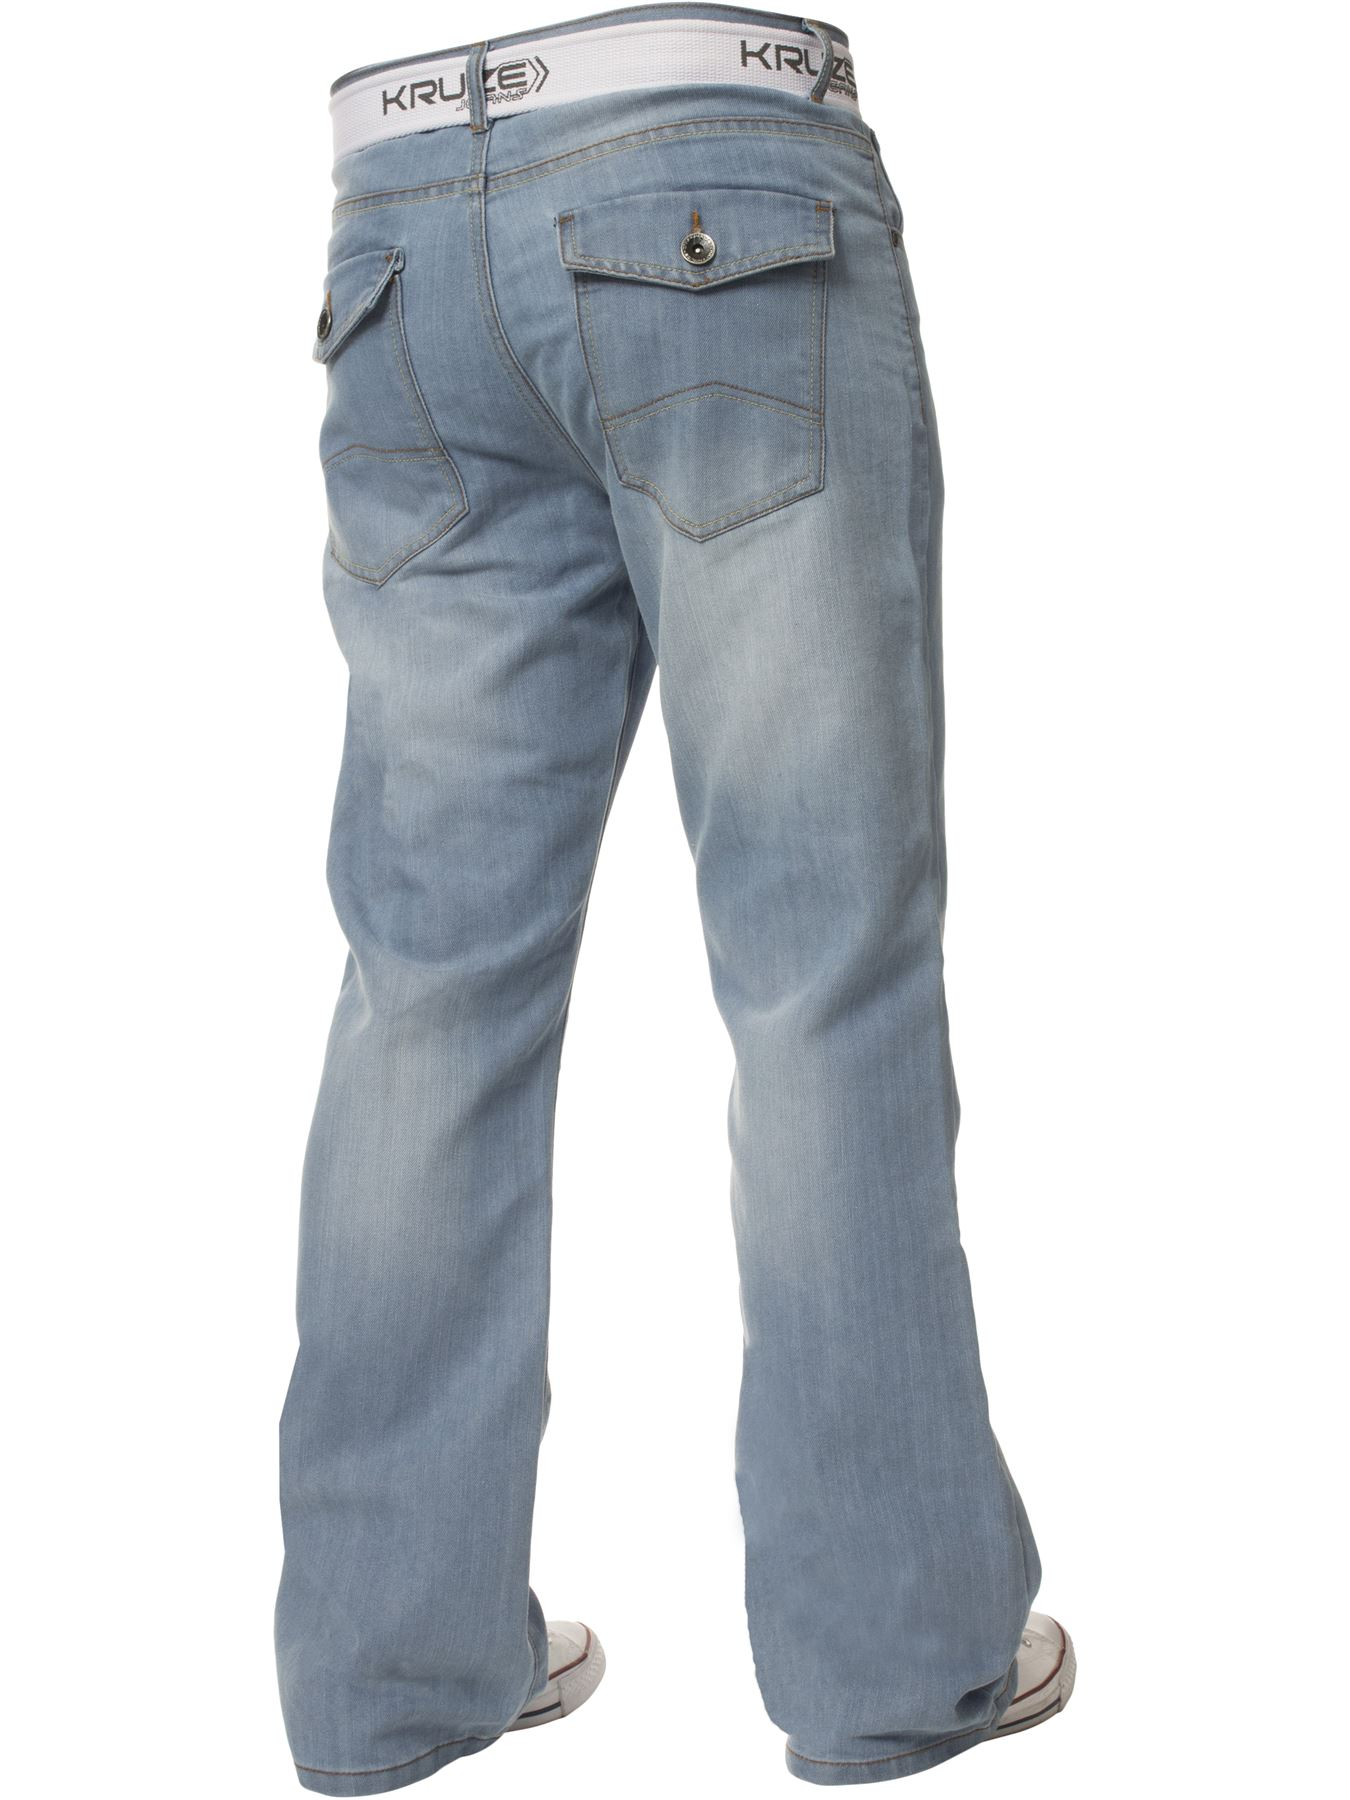 Kruze-Denim-New-Mens-Bootcut-Jeans-Wide-Leg-Flare-Pants-King-Big-All-Waist-Sizes thumbnail 17